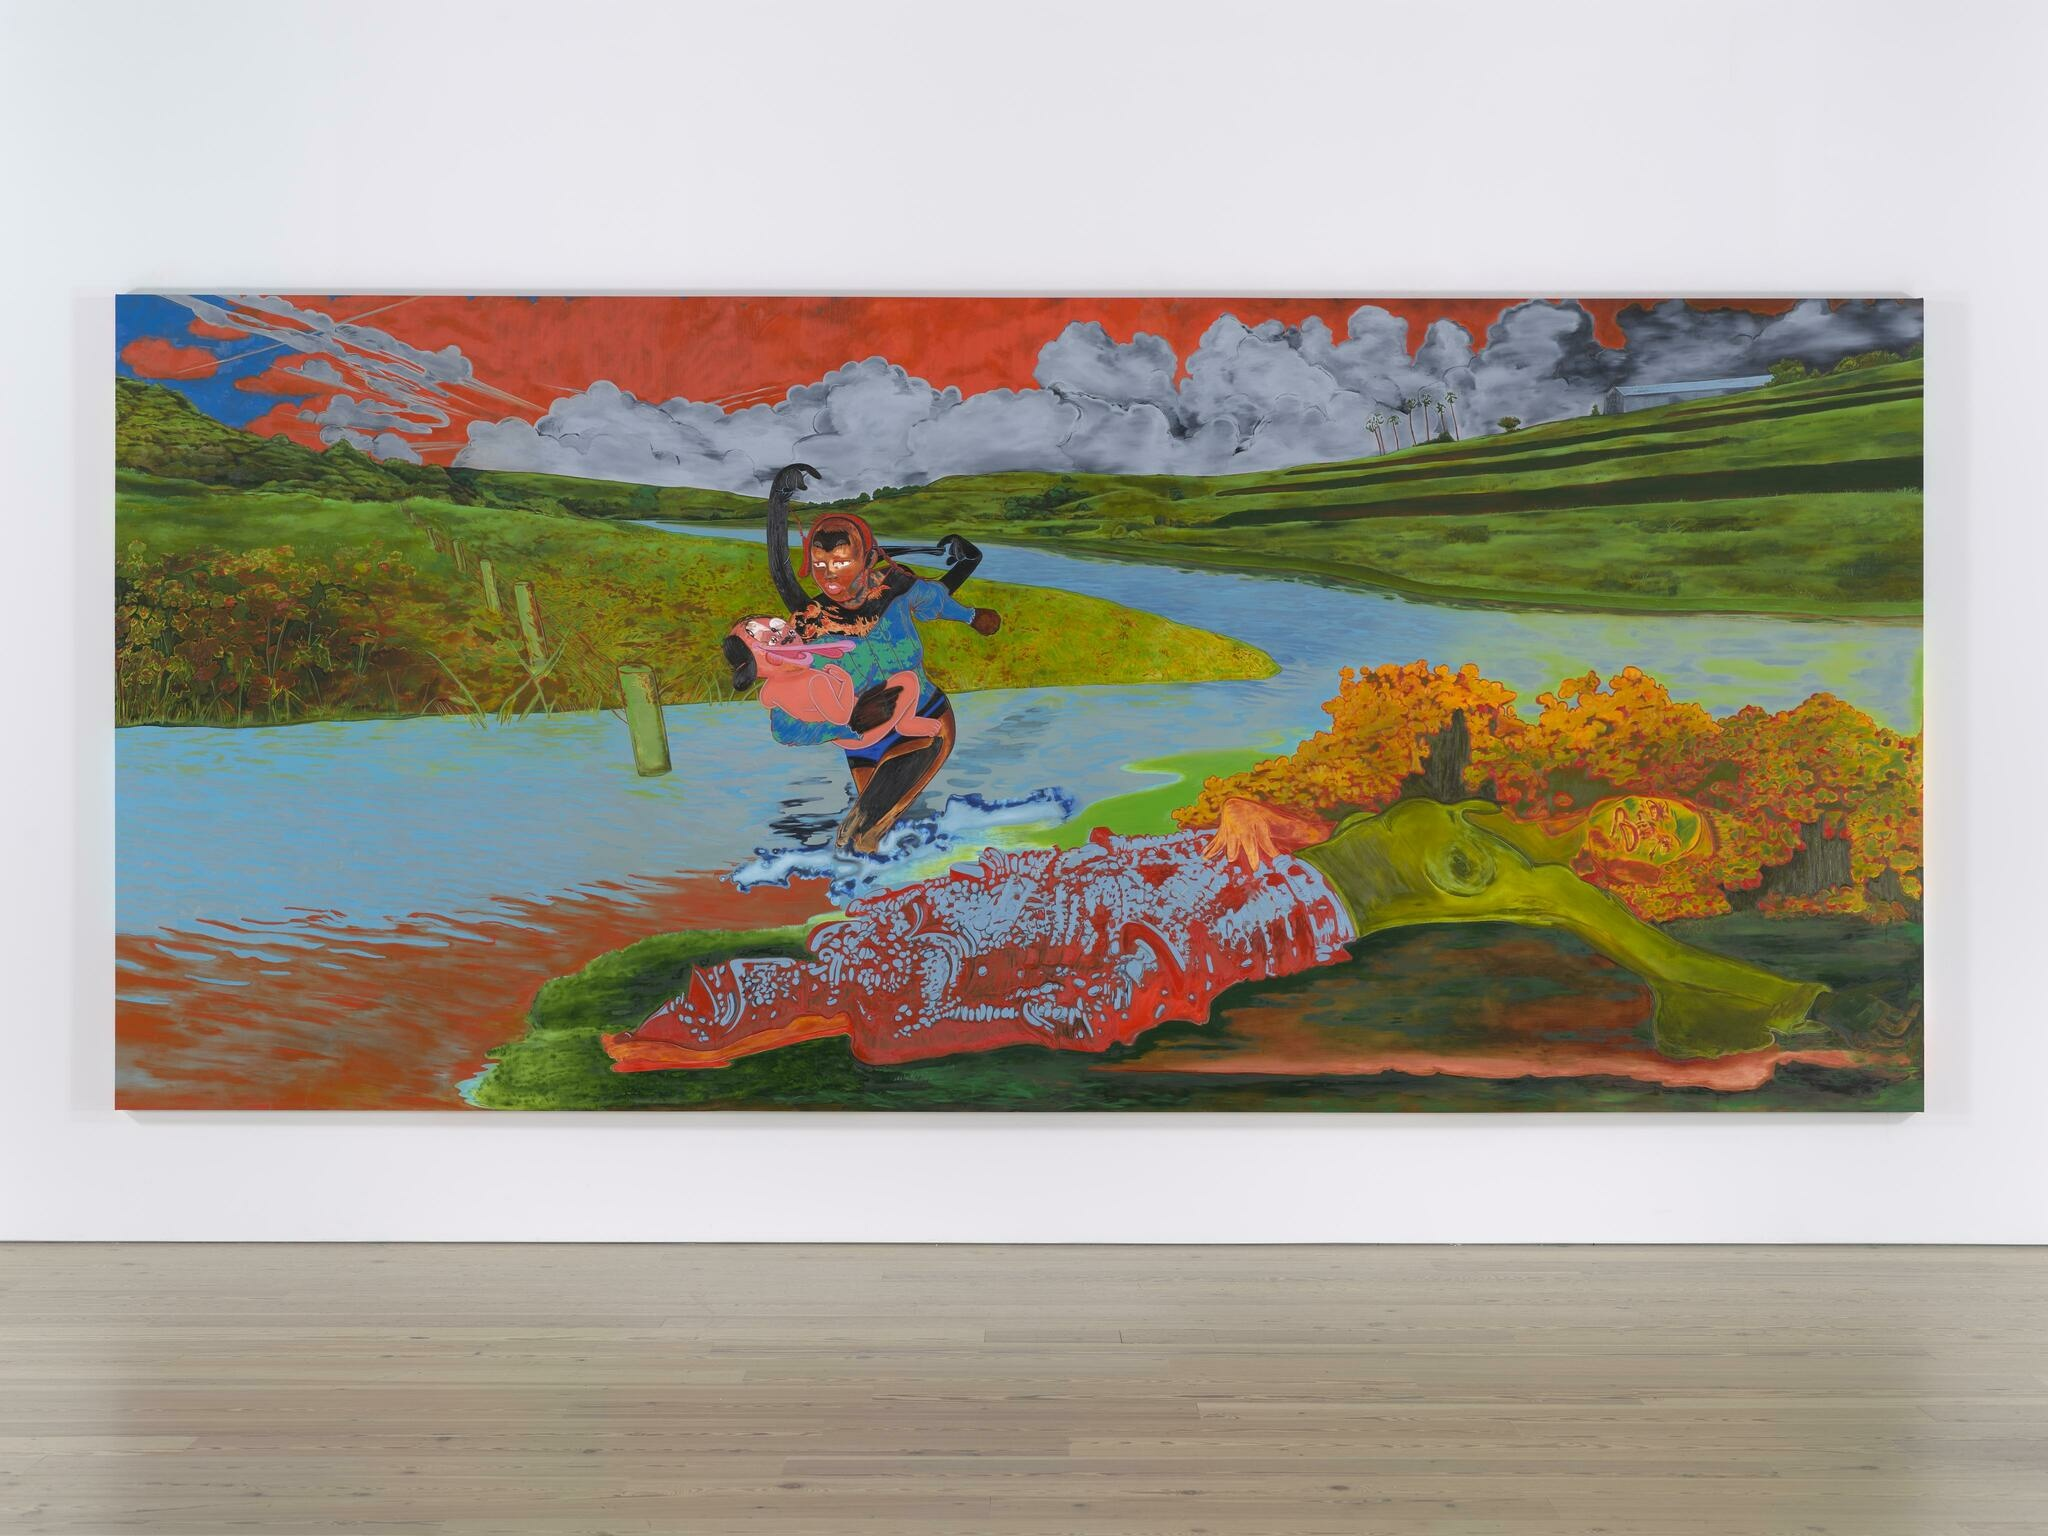 A cartoonish figure runs heroicallly through a river flowing through a saturated, neon landscape